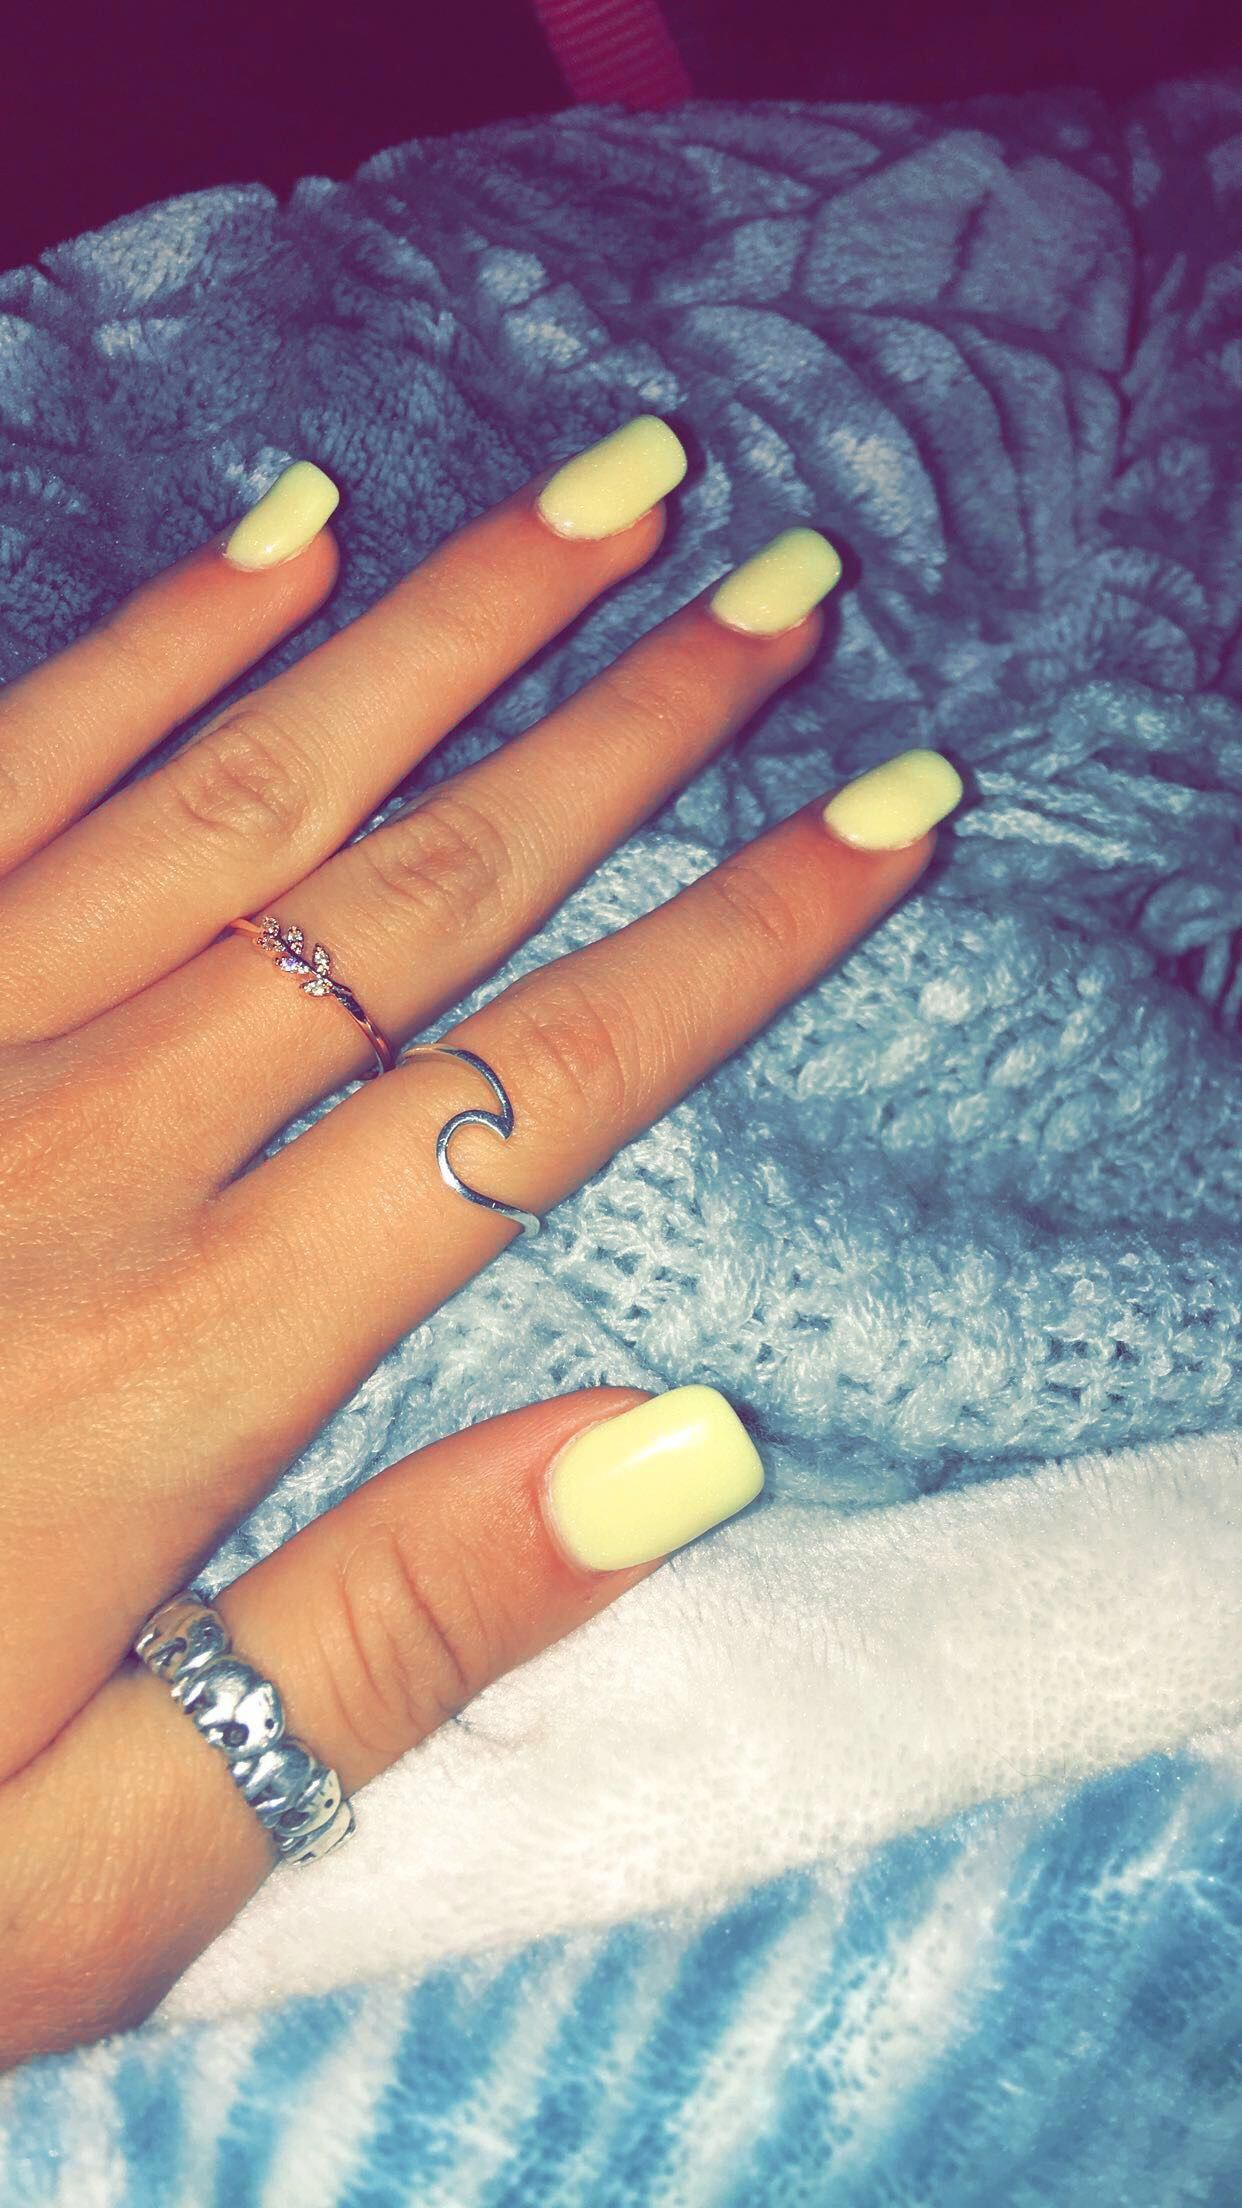 Yellow Nails Beautifulacrylicnails With Images Yellow Nails Oval Shaped Nails Cute Acrylic Nails